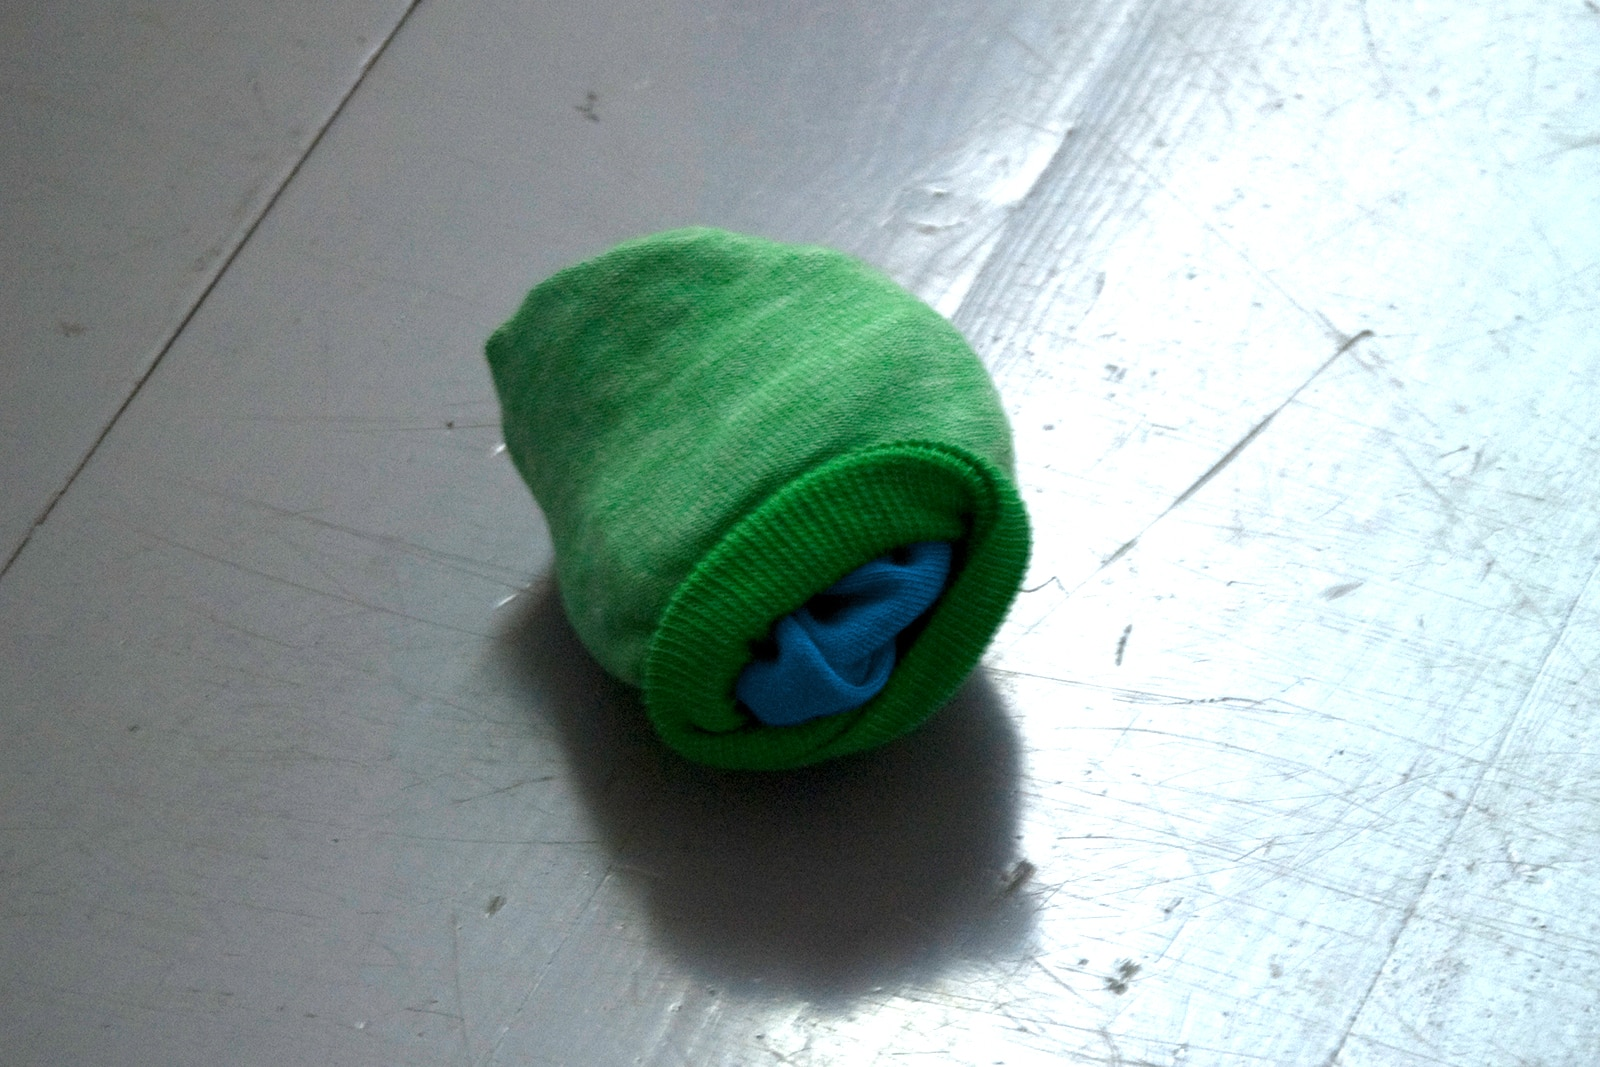 Untitled (World) - Two socks, the color of the world, bundled together.